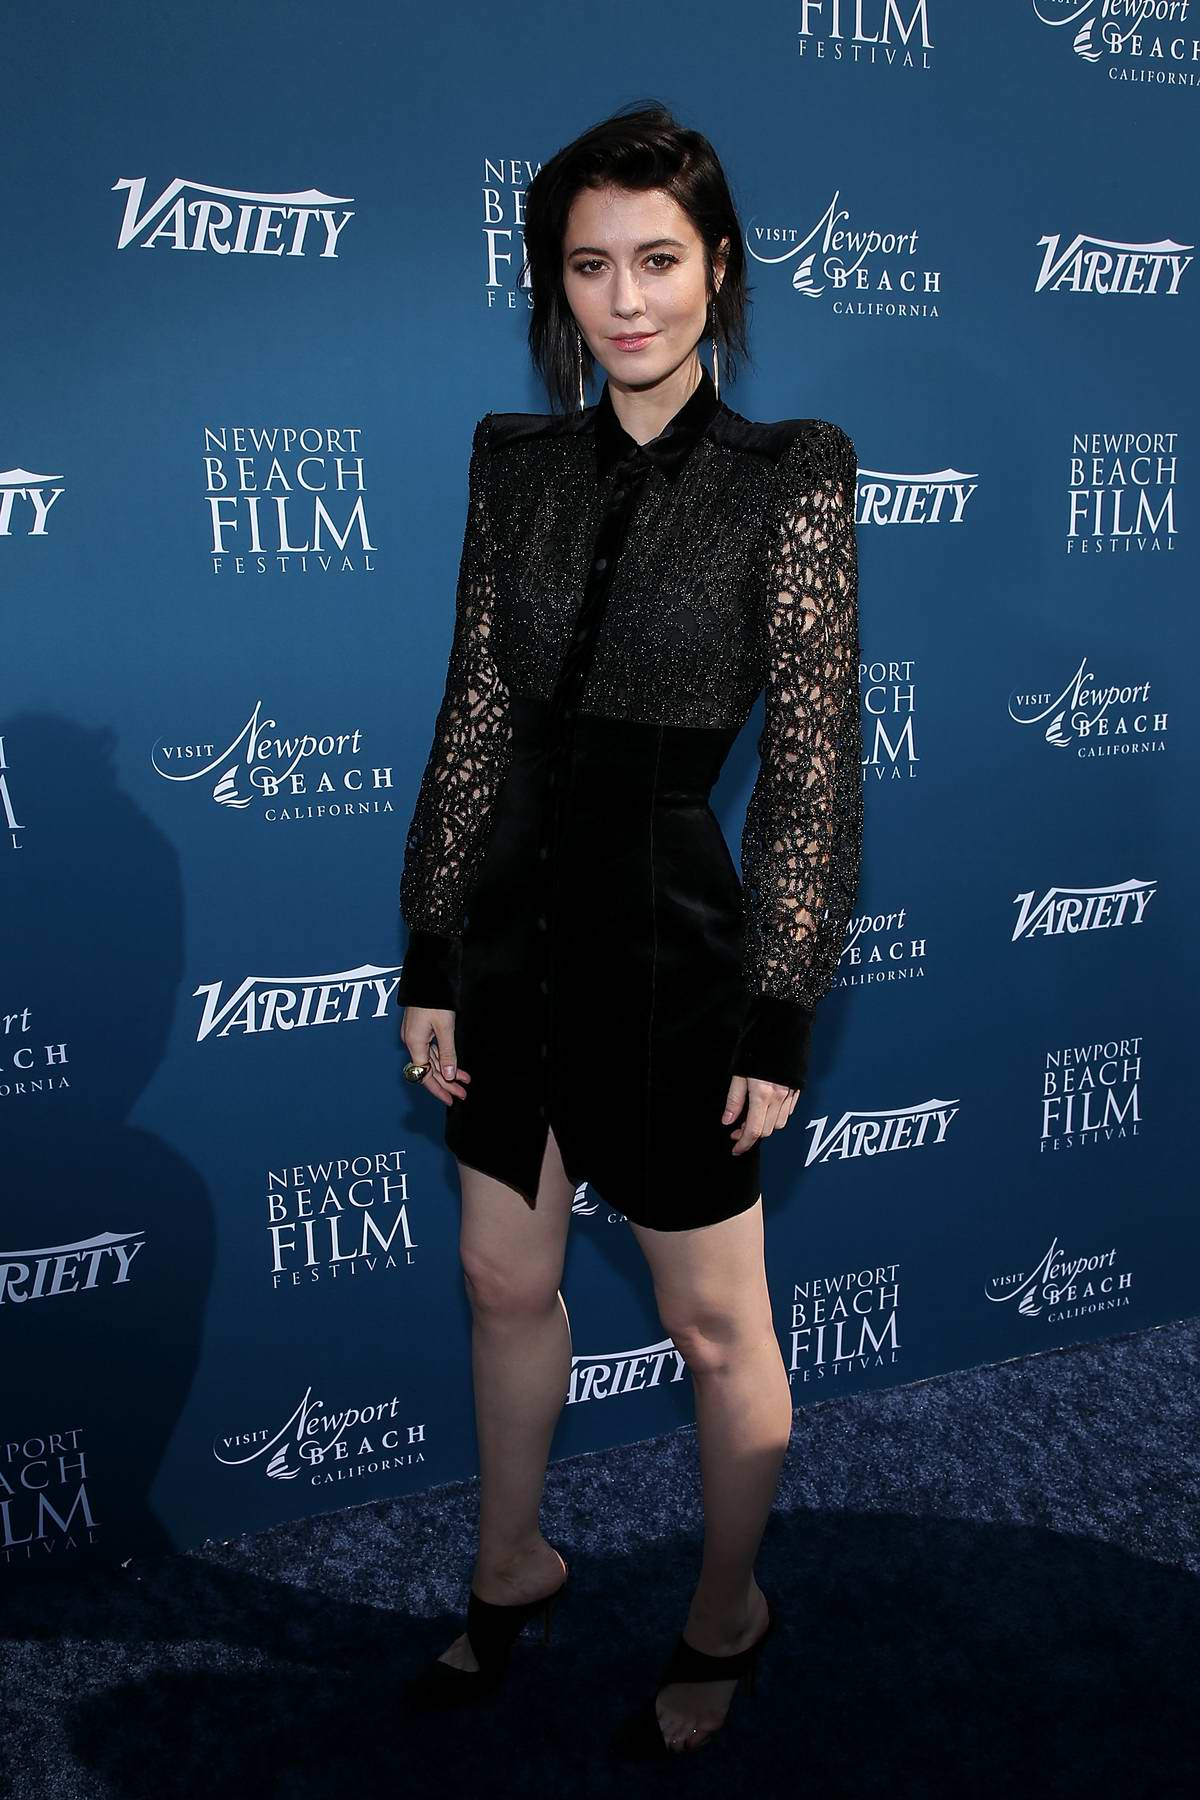 Mary Elizabeth Winstead attends Newport Beach Film Festival Fall Honors And Variety's 10 Actors To Watch in Newport Beach, California